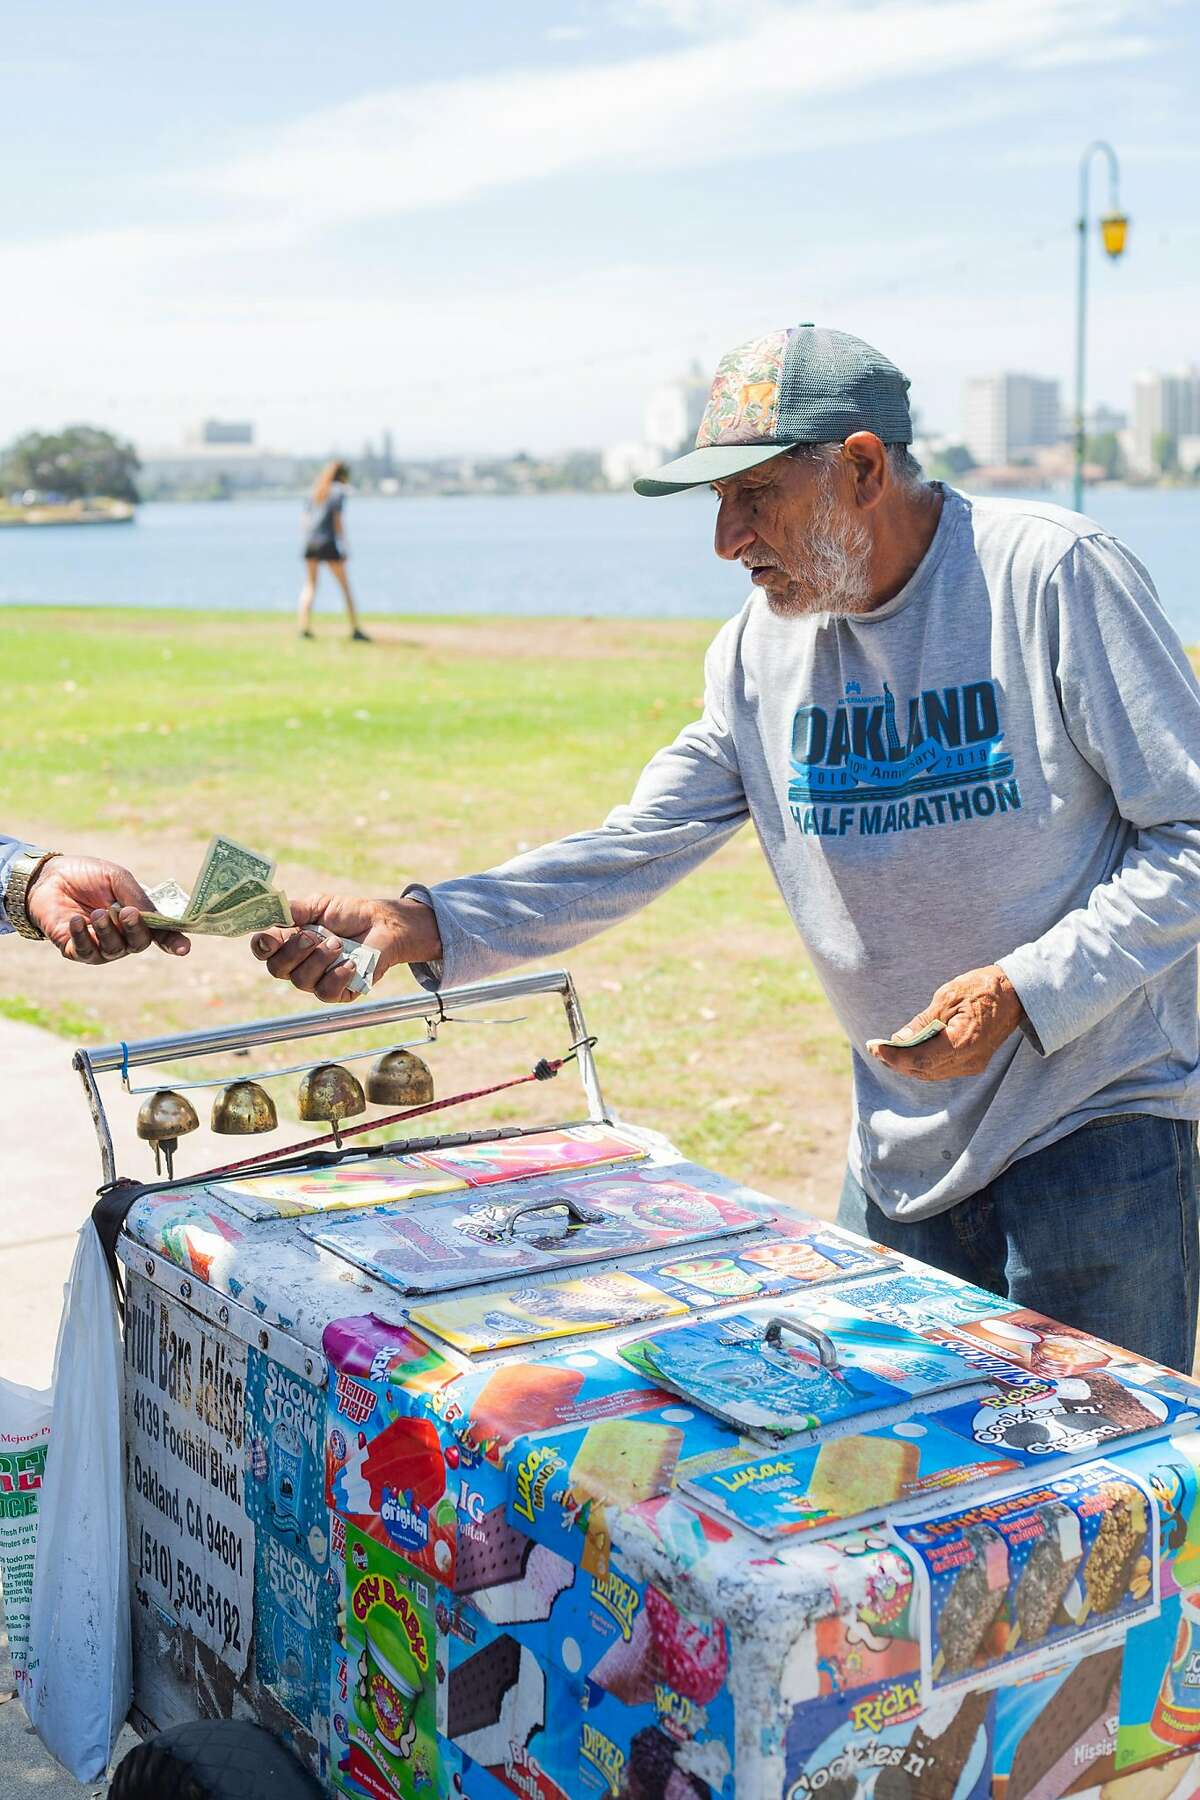 Juan, (lastname withheld) hands a customers his change on the edge of Lake Merrit on Thursday August 13, 2020 in Oakland, CA. Juan has been selling icecream by Lake Merrit for over 5 years.